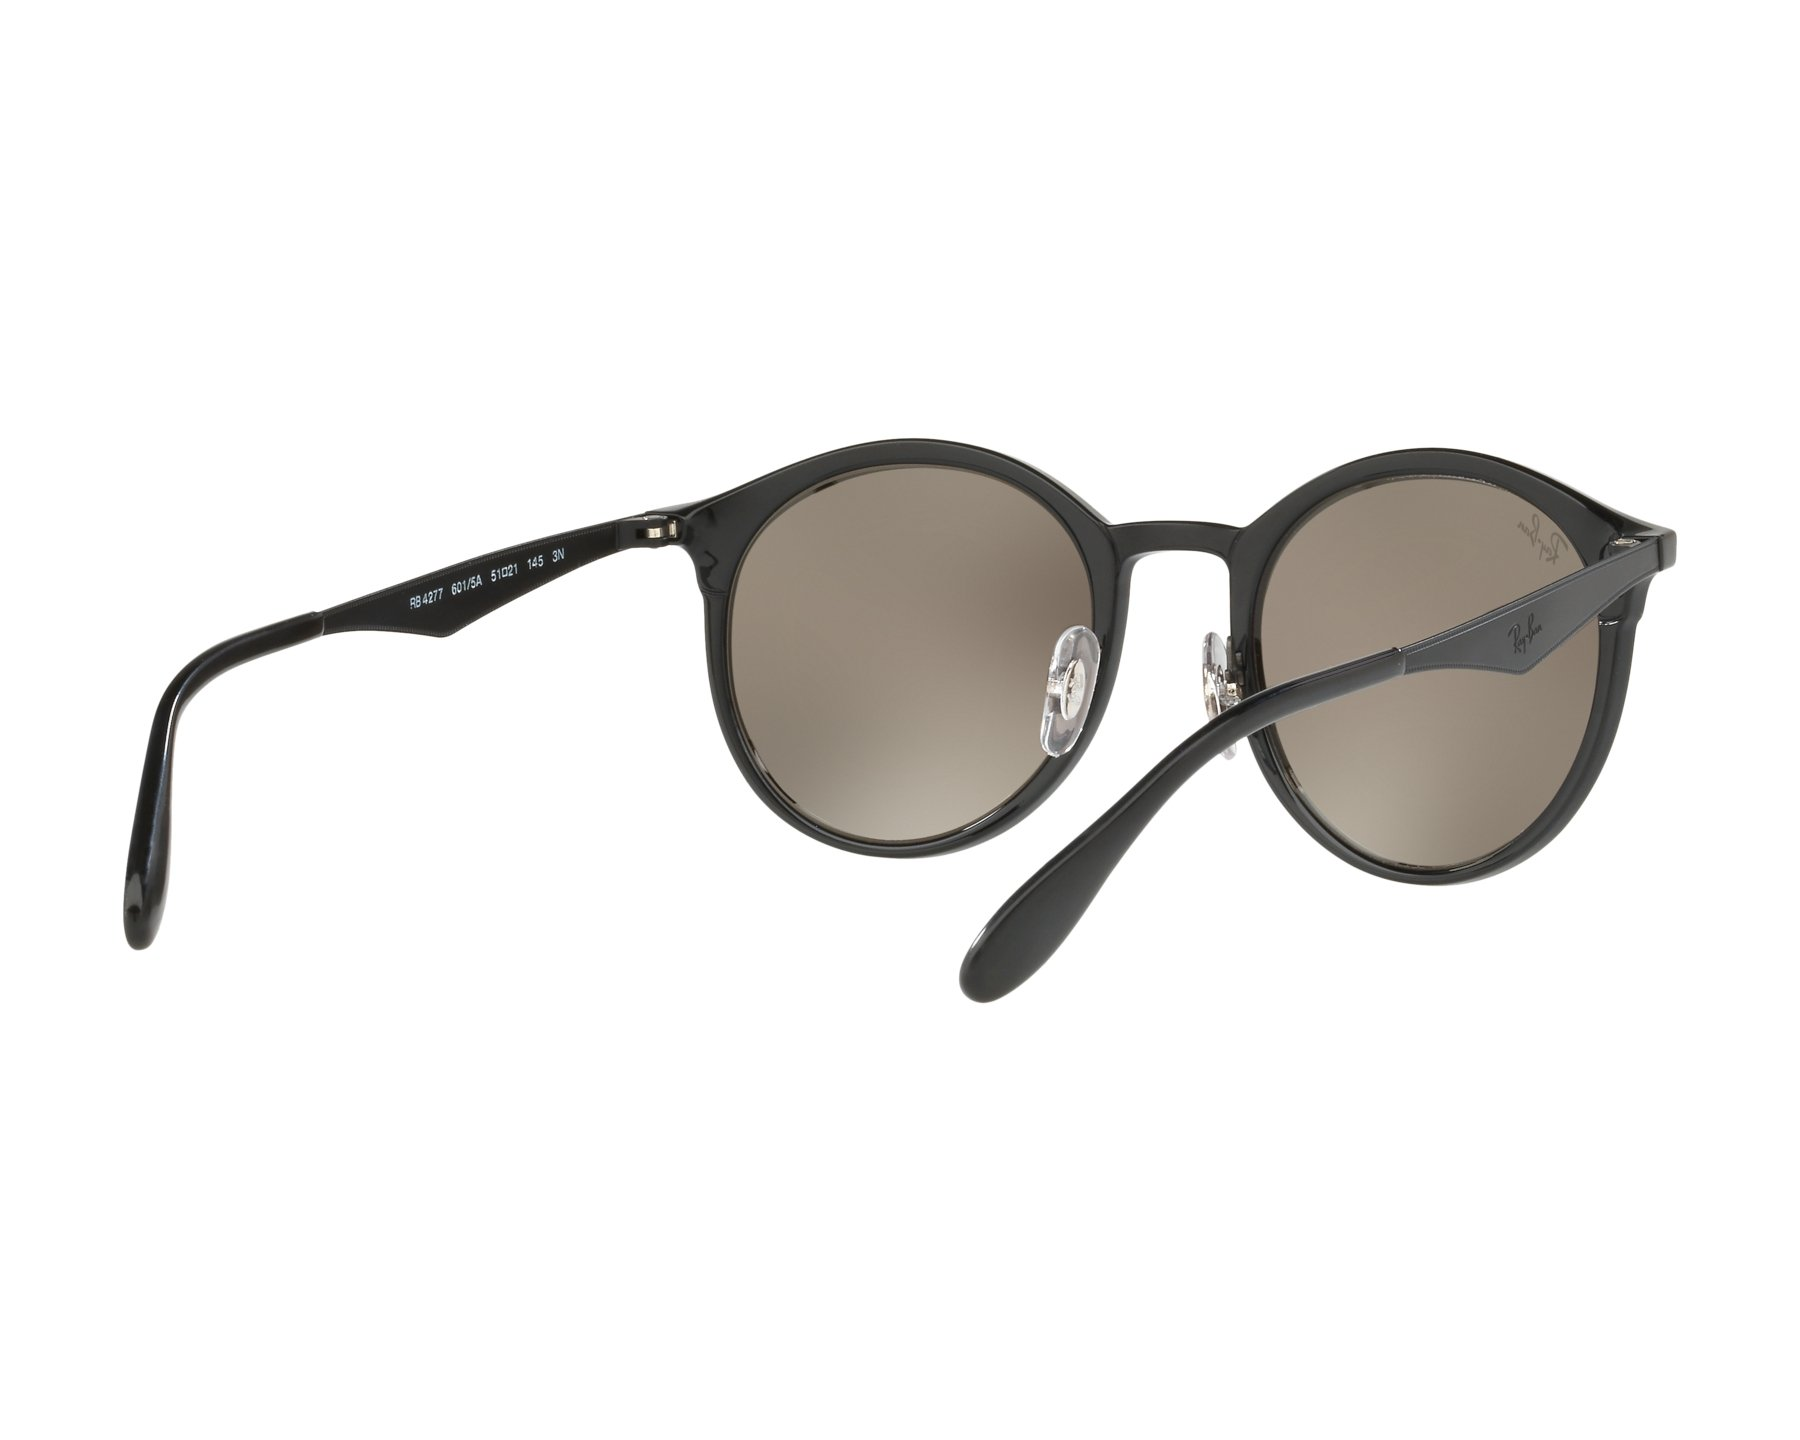 Ray-Ban RB4277 601/5A 51 mm/21 mm dxxLJ6mX